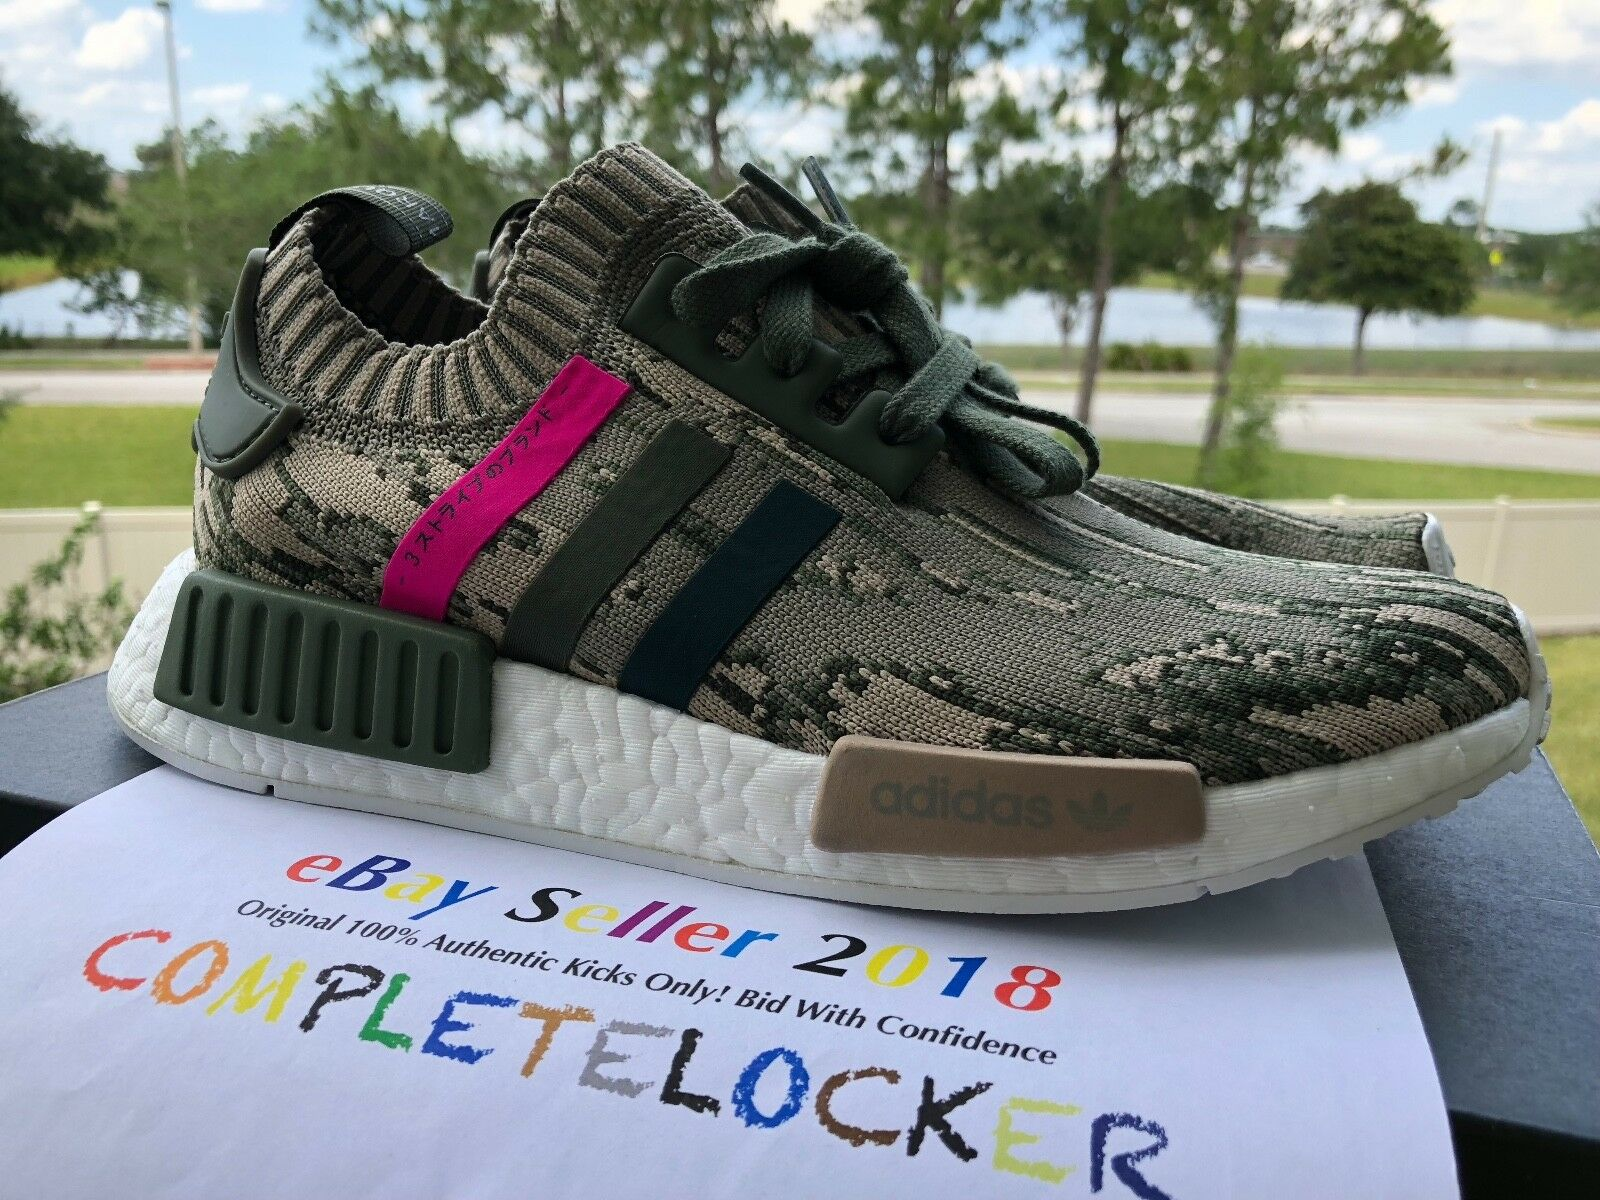 New Adidas NMD R1 PK Japan Camo Womens BY9864 Green 10 Pink Primeknit Shoes SZ 10 Green 4f8f1a